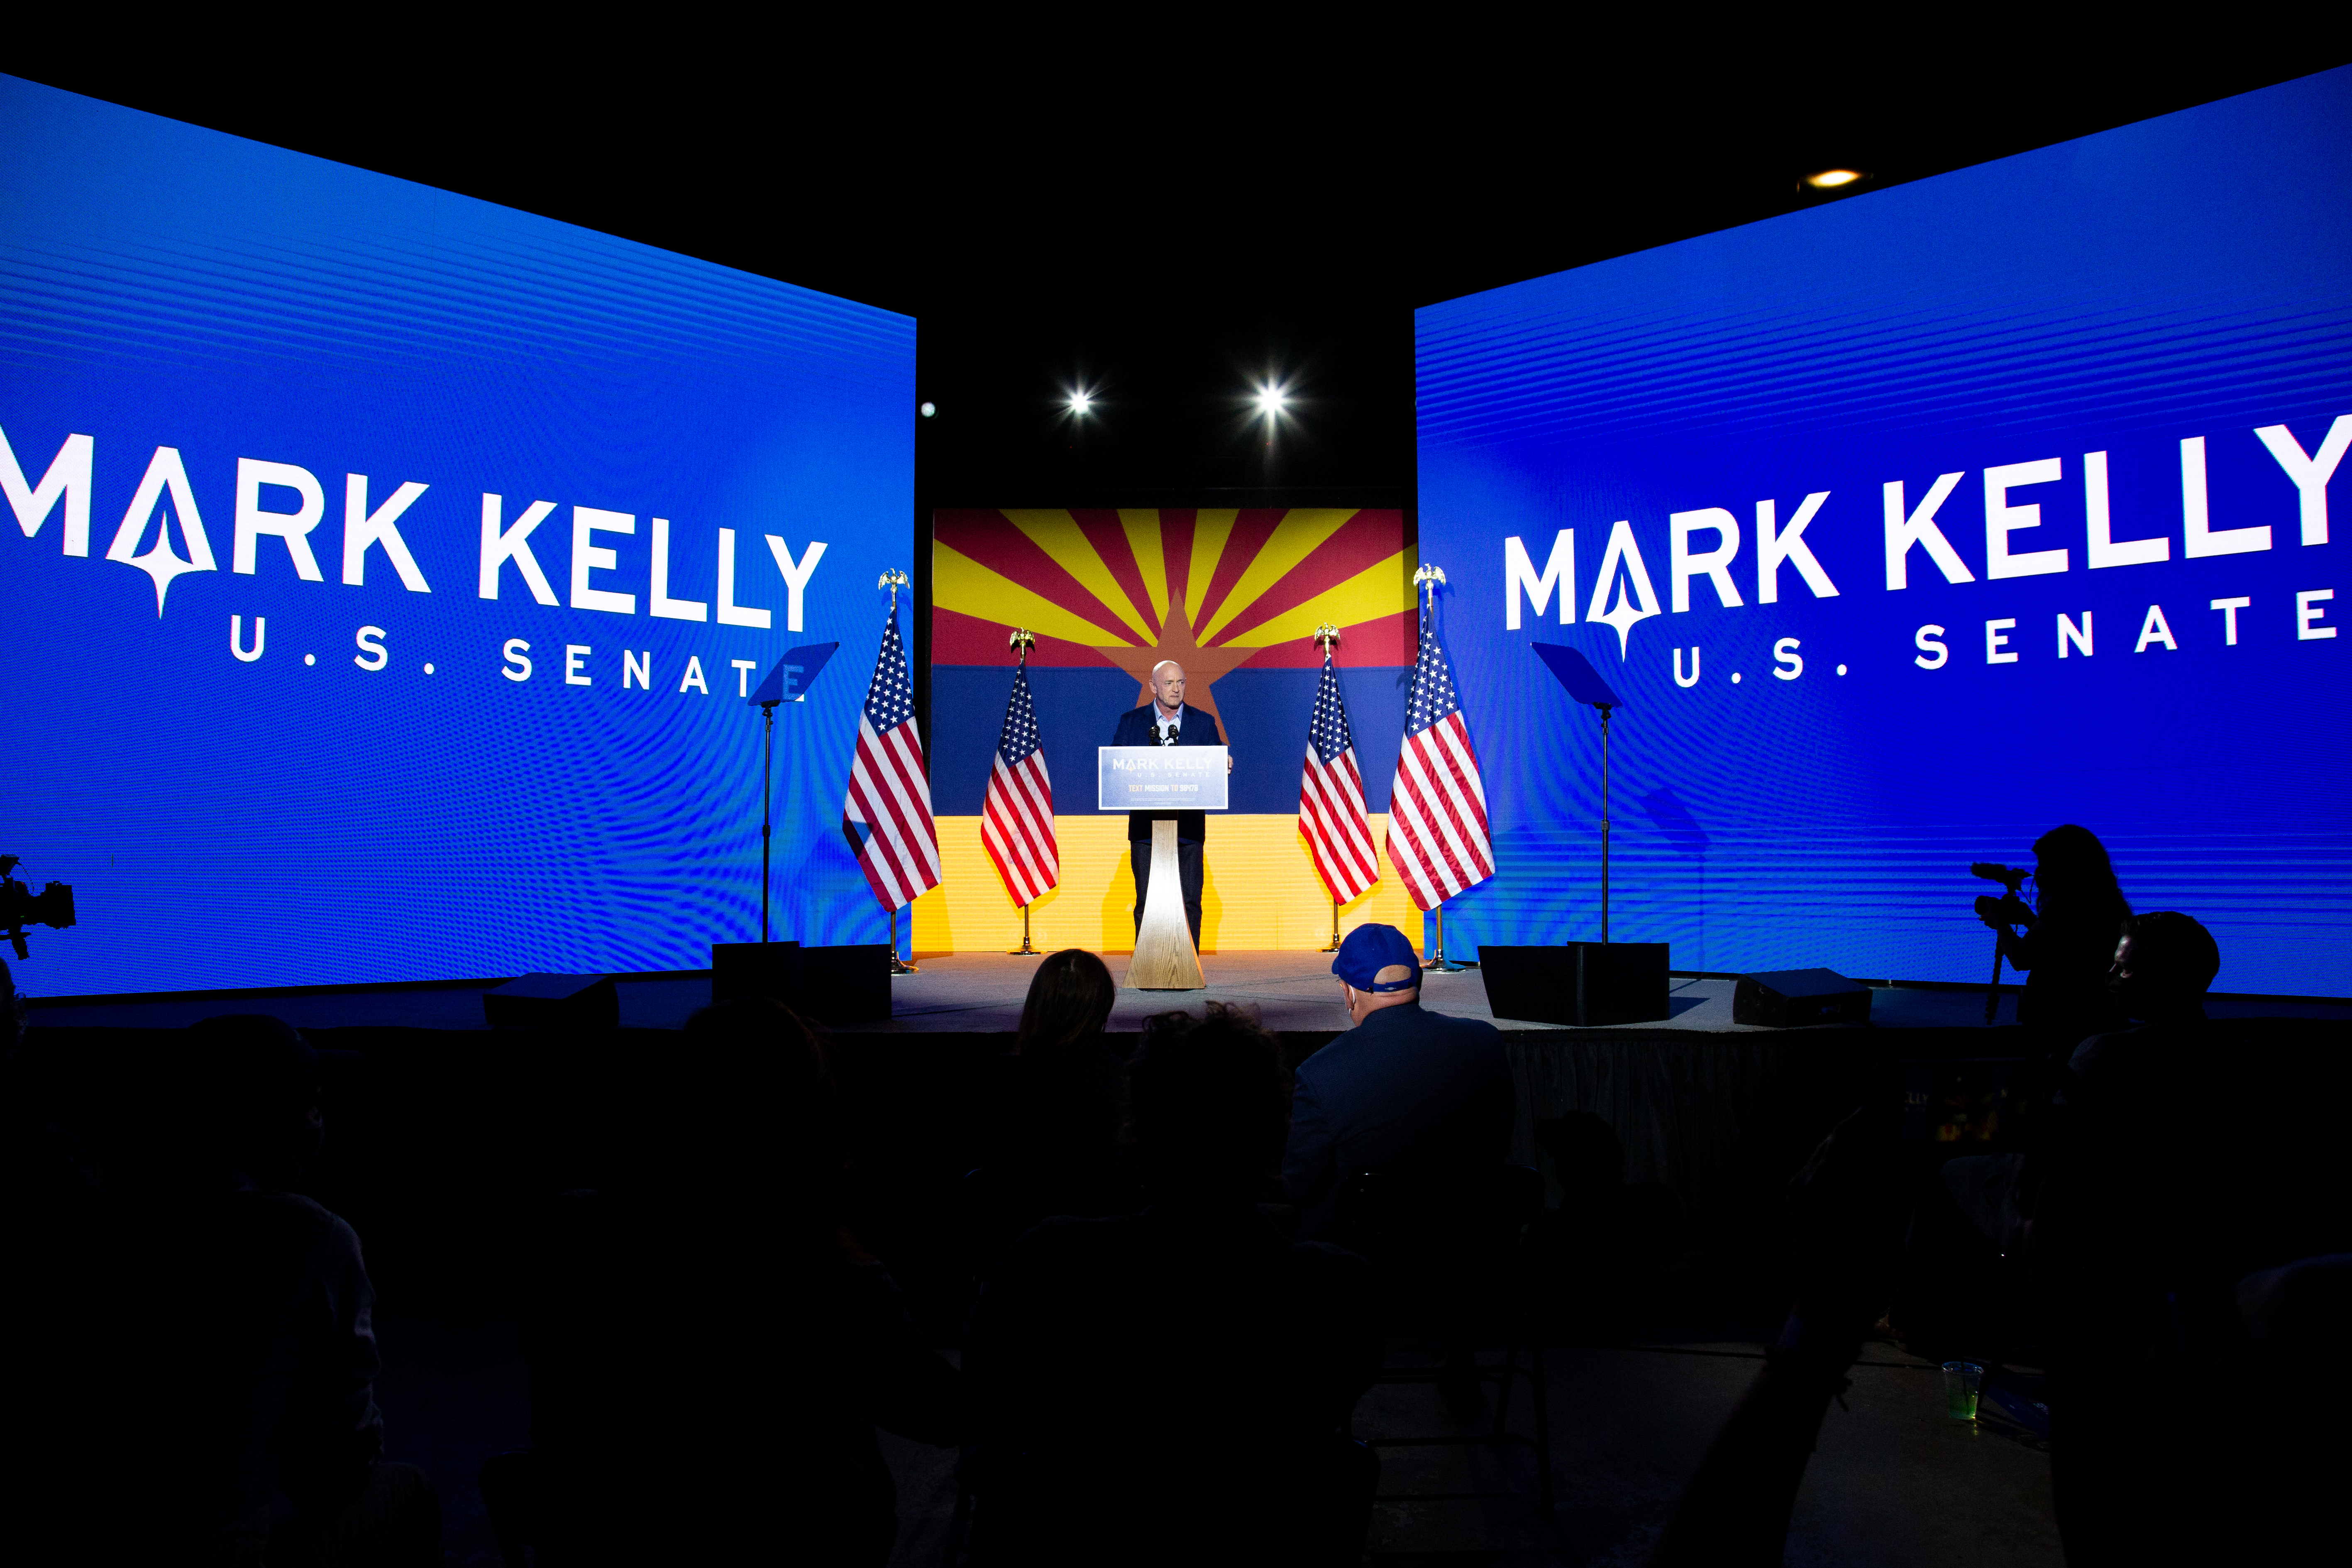 Democrat Mark Kelly speaks to supporters in Tucson, Ariz., on Nov. 3, while awaiting results of his Senate race against Republican Martha McSally.